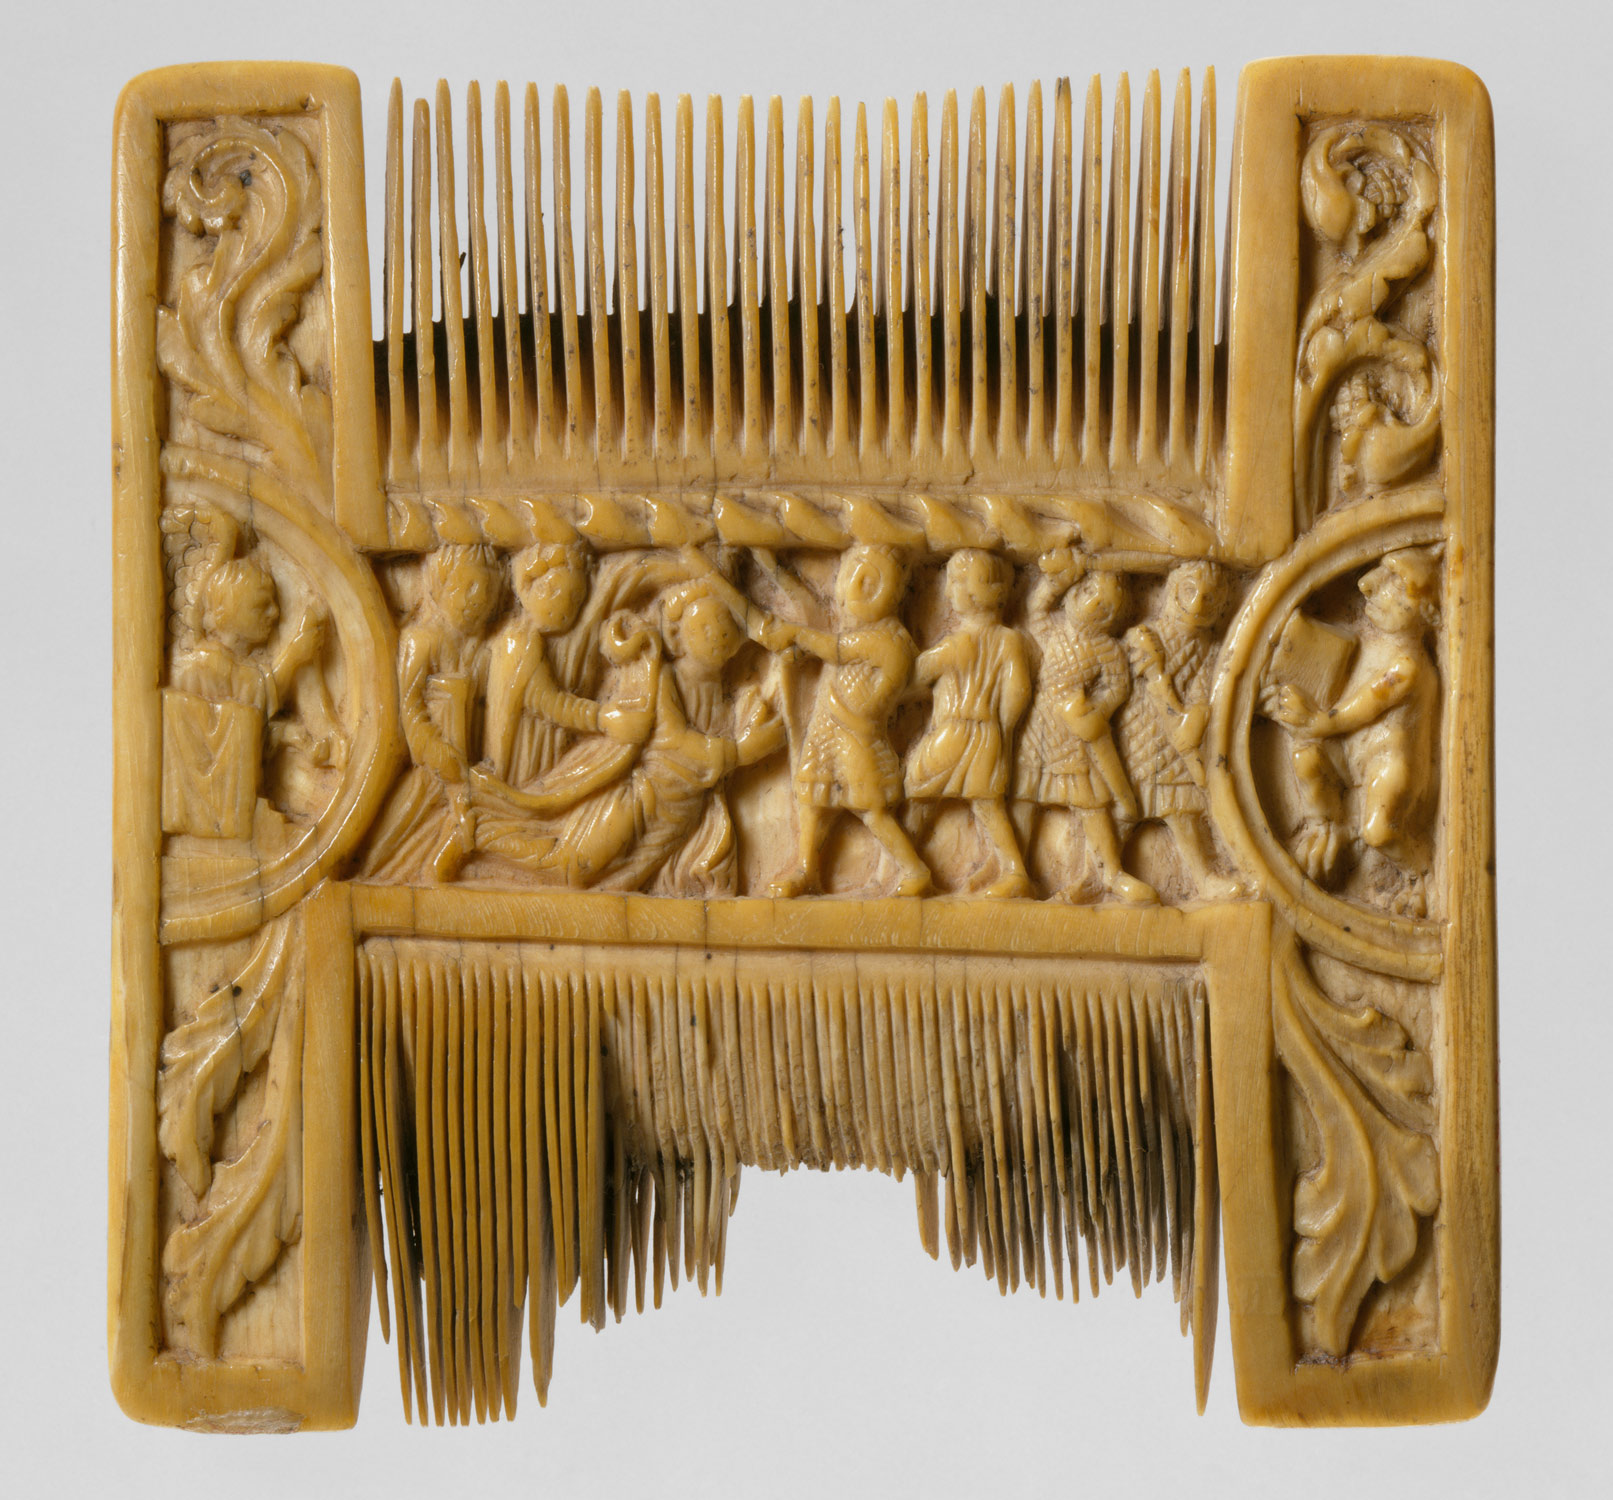 double sided ivory liturgical comb scenes of henry ii and double sided ivory liturgical comb scenes of henry ii and thomas becket